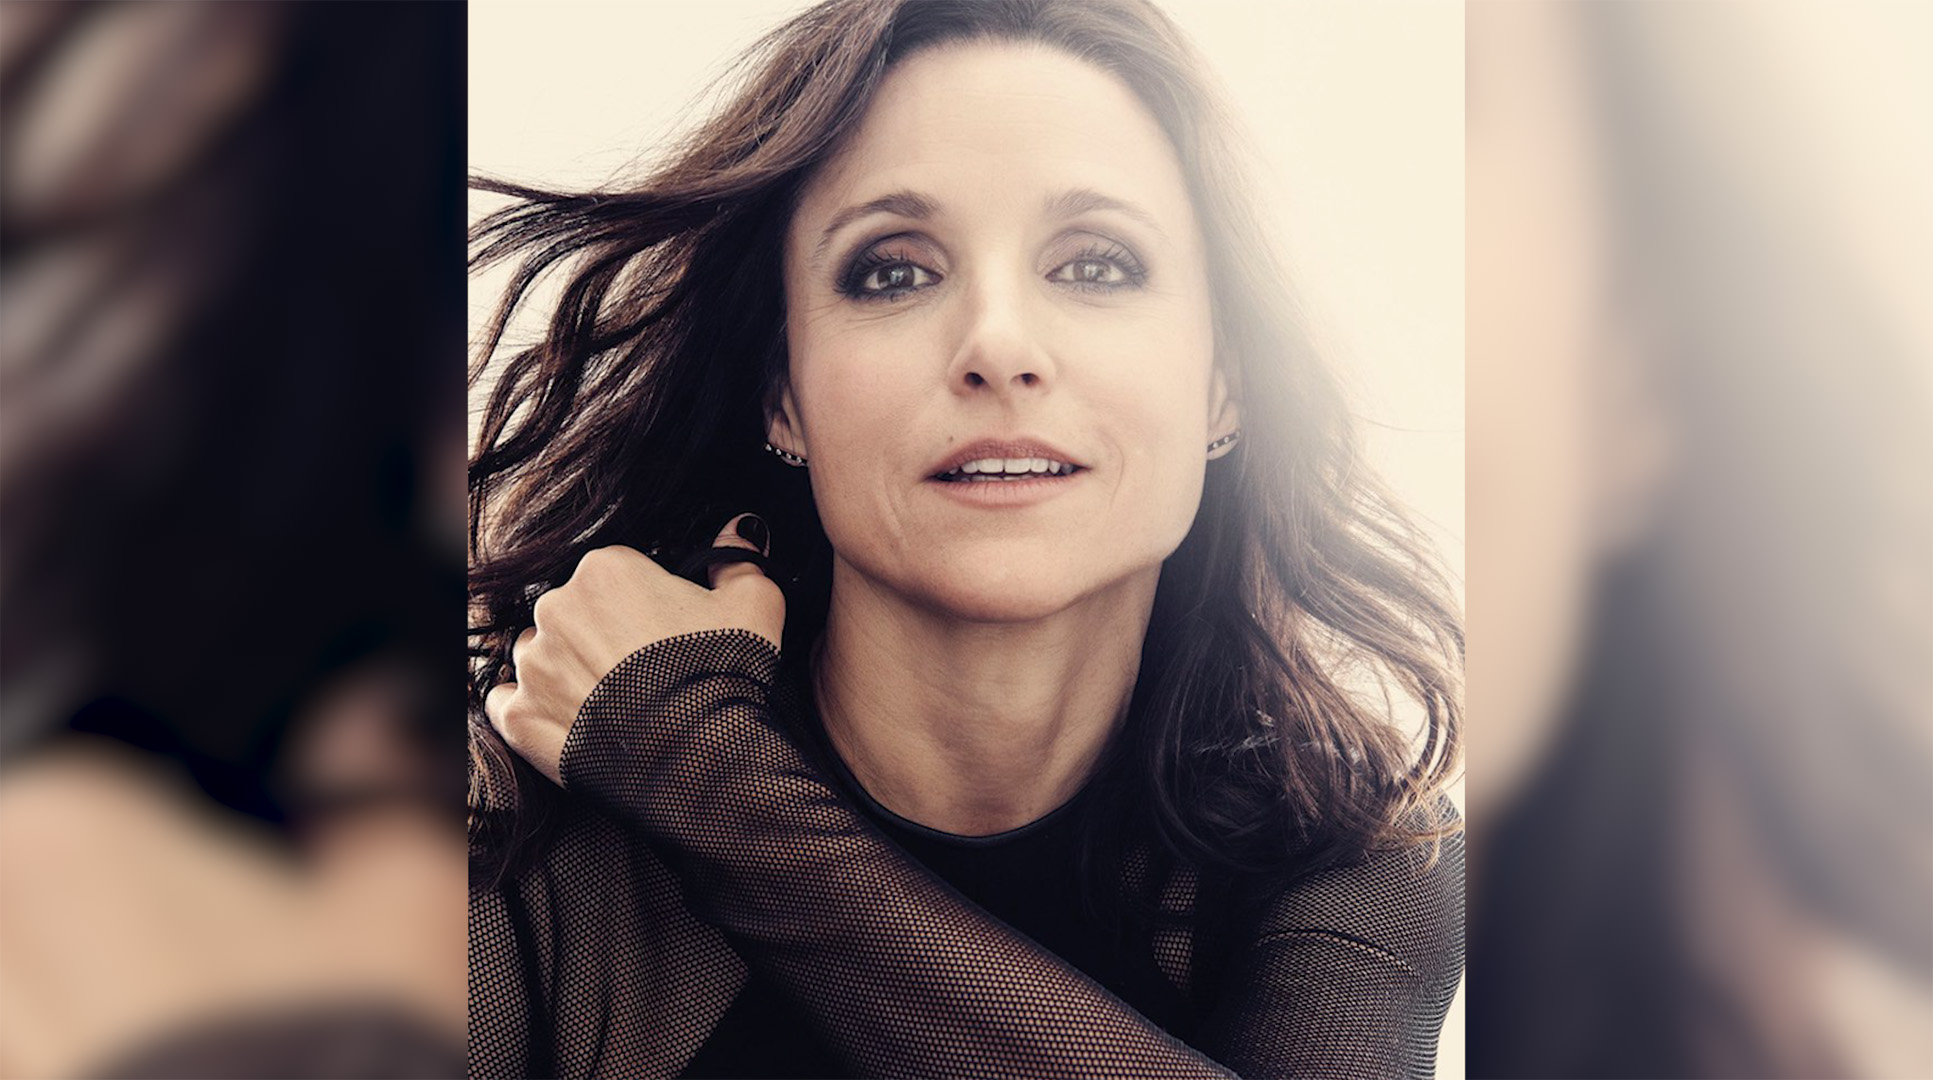 Video Julia Louis-Dreyfus nude photos 2019